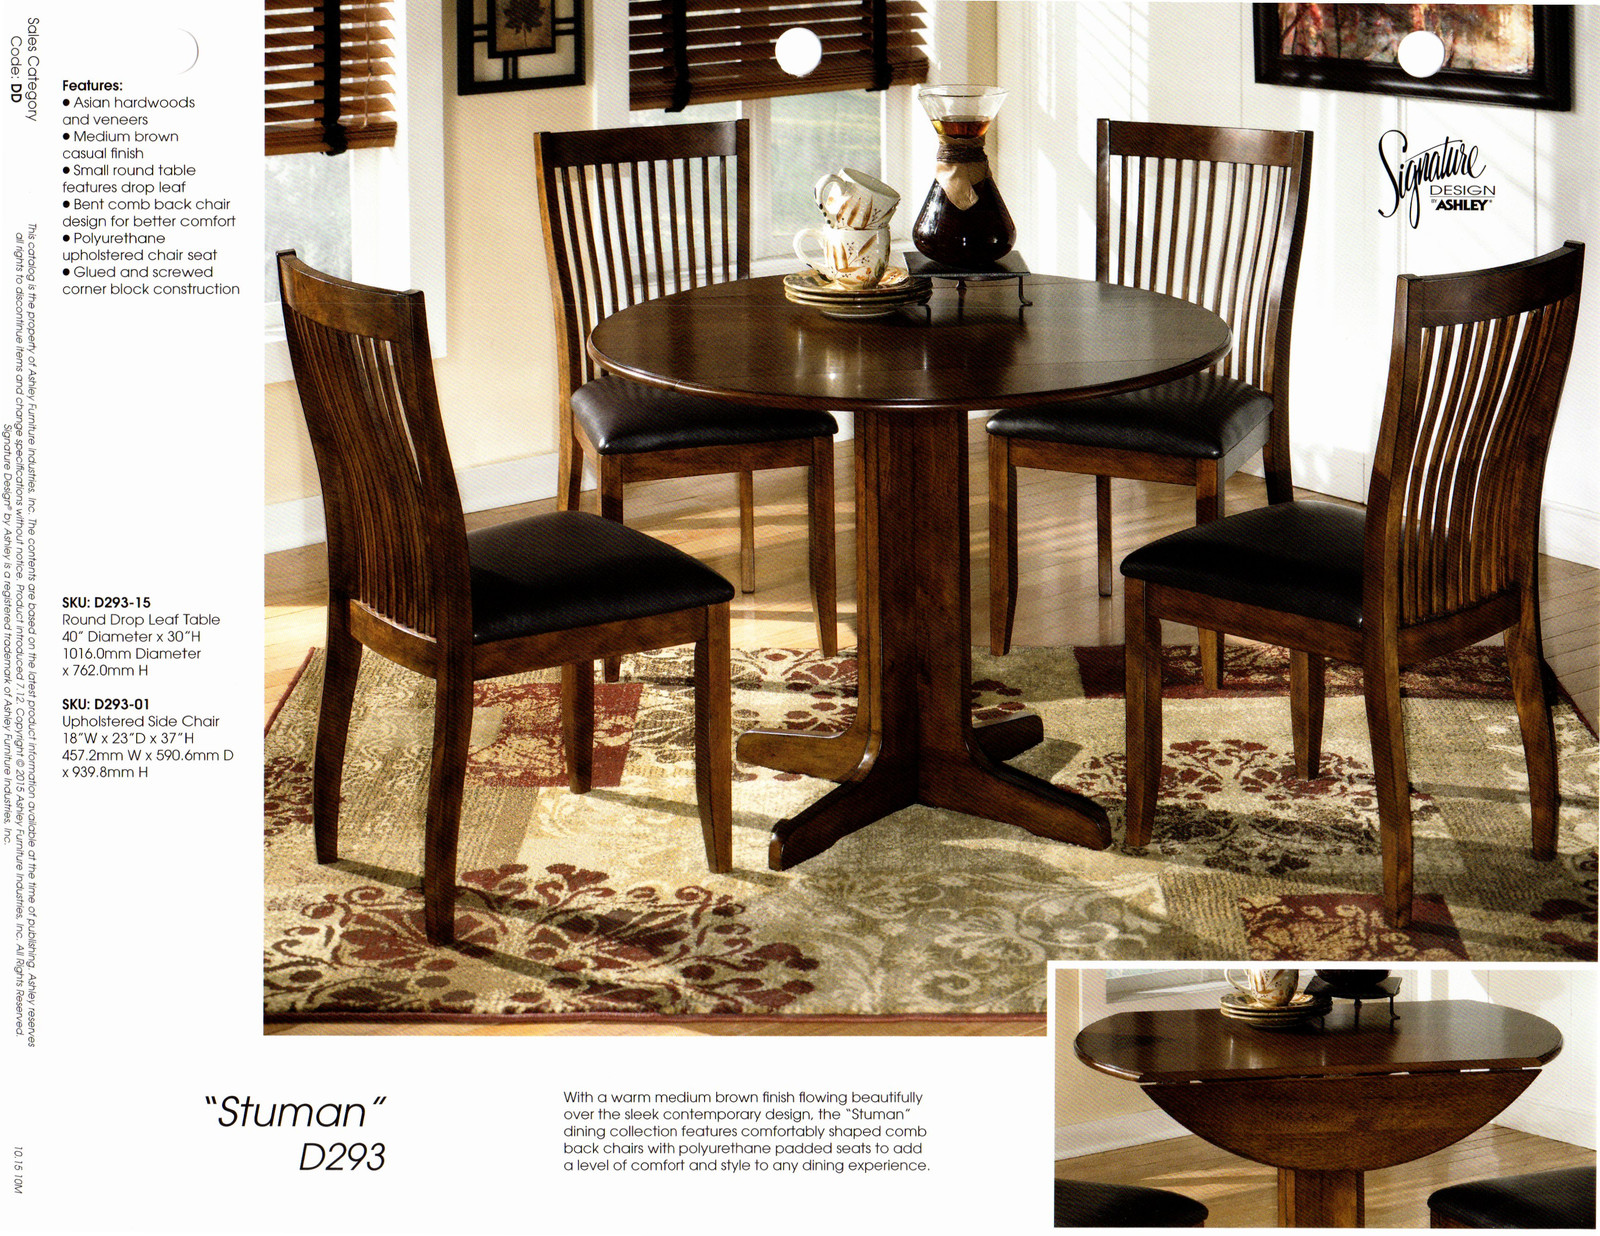 Knechts interiors ashley dining sets connersville location workwithnaturefo